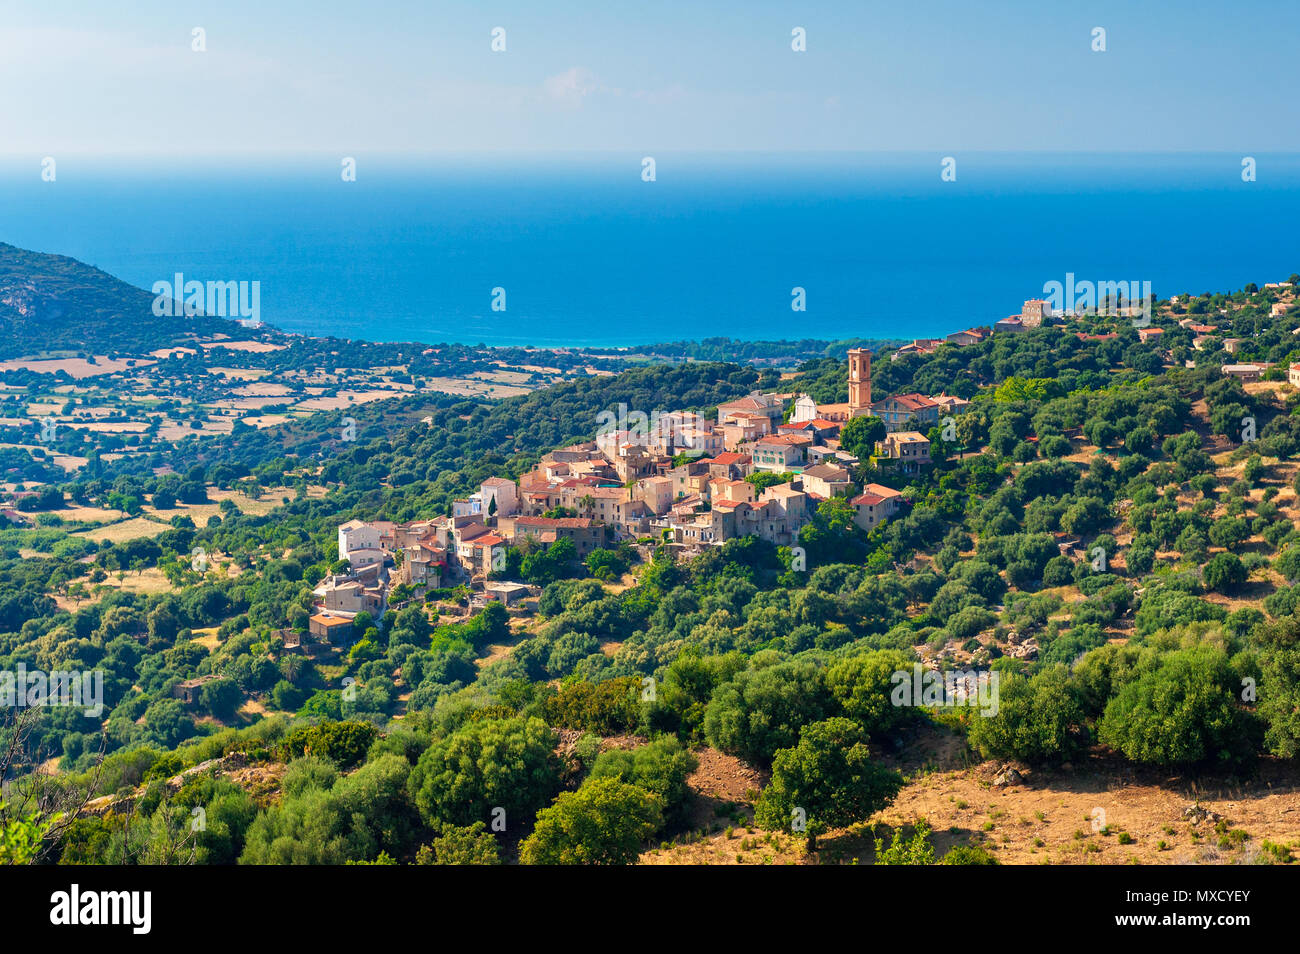 Village of Sant'Antonino in Corsica France - Stock Image